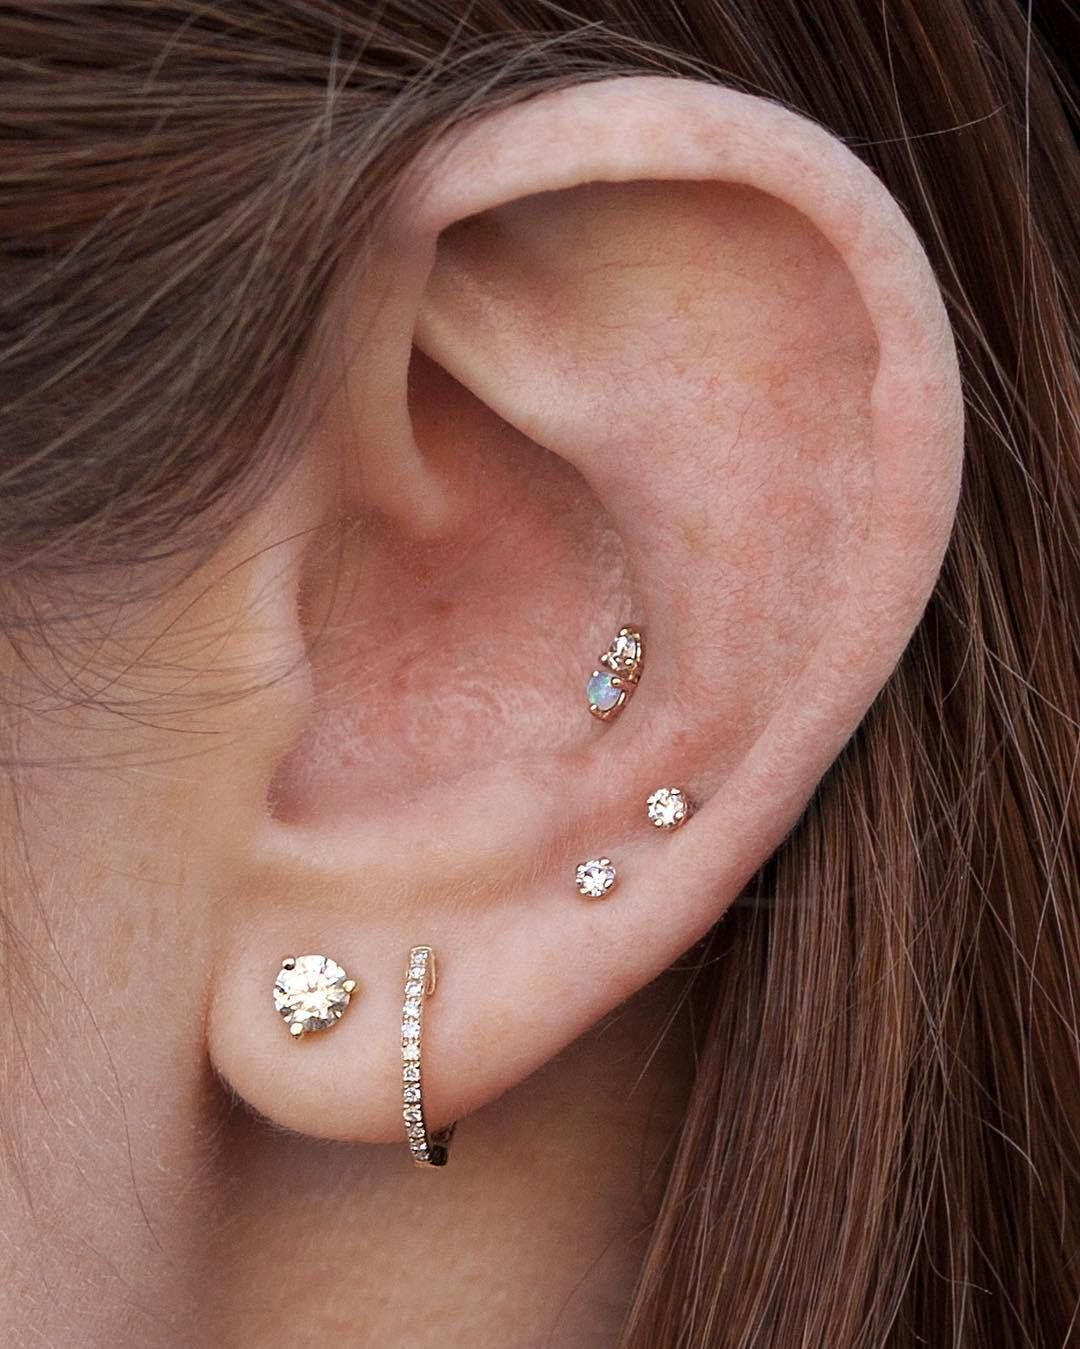 Cartilage Piercings Guide – Every Thing You Need to Know About it images